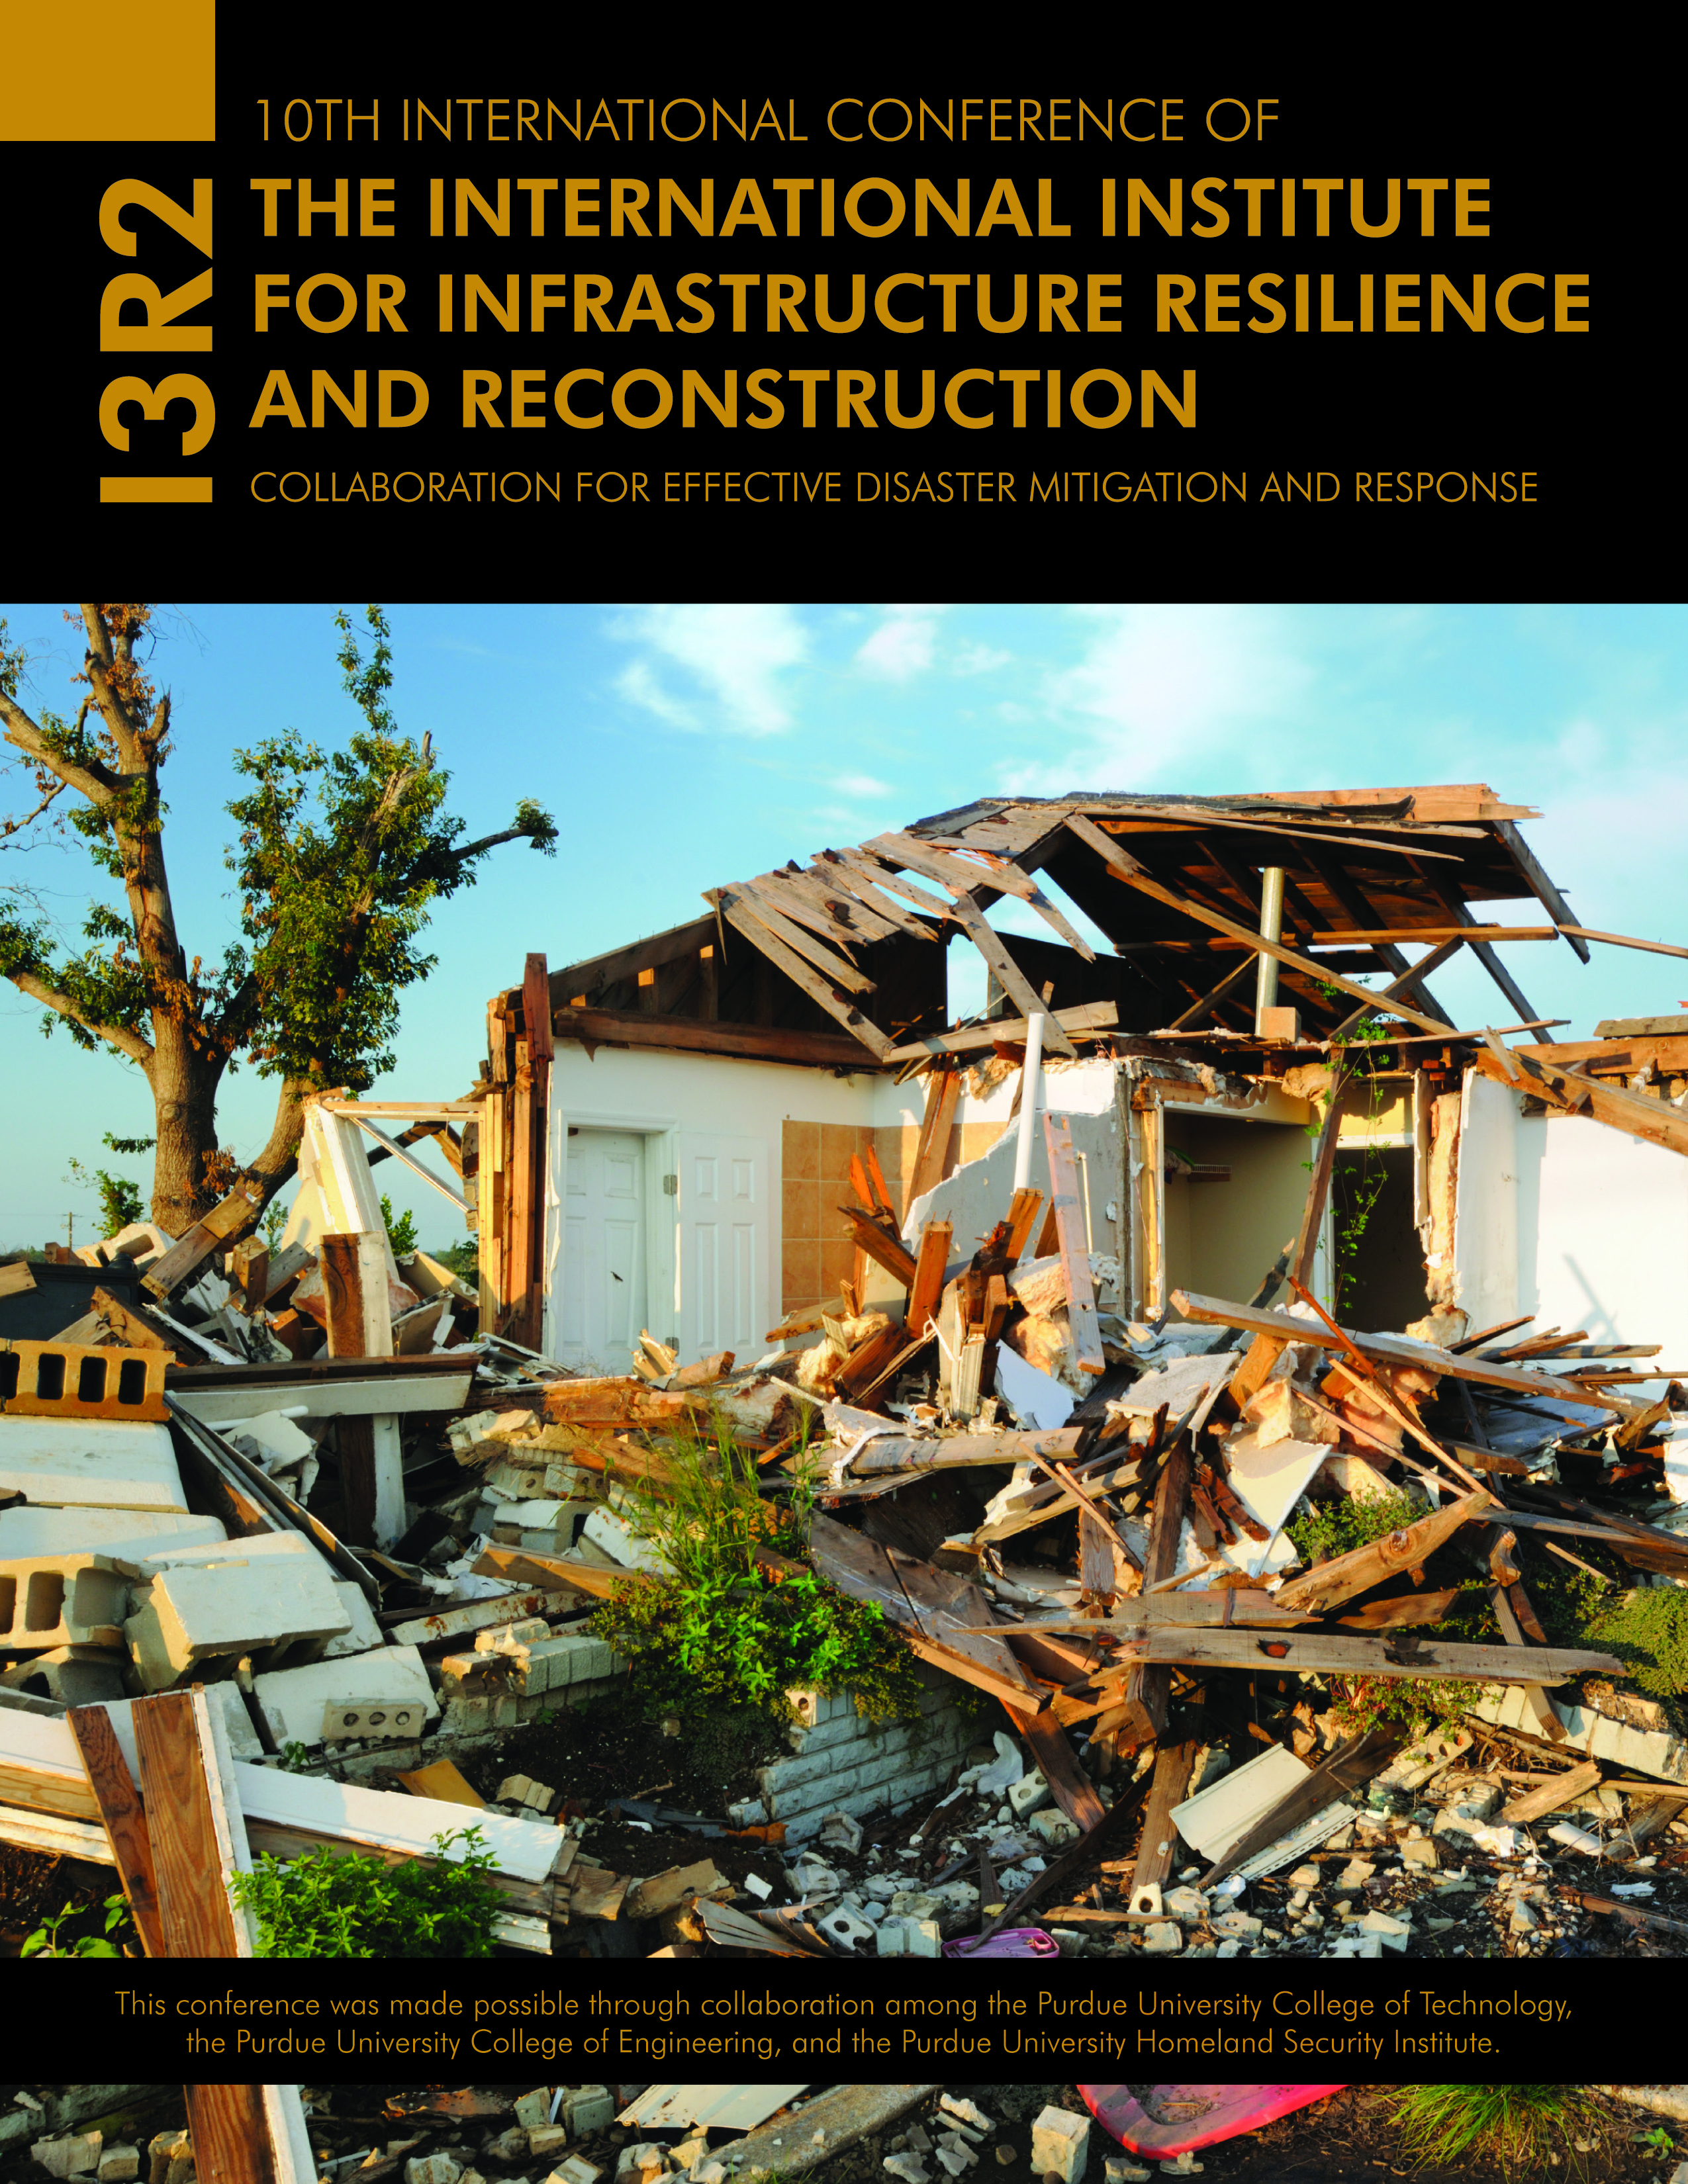 International Institute for Infrastructure Resilience and Reconstruction (I3R2) Conference